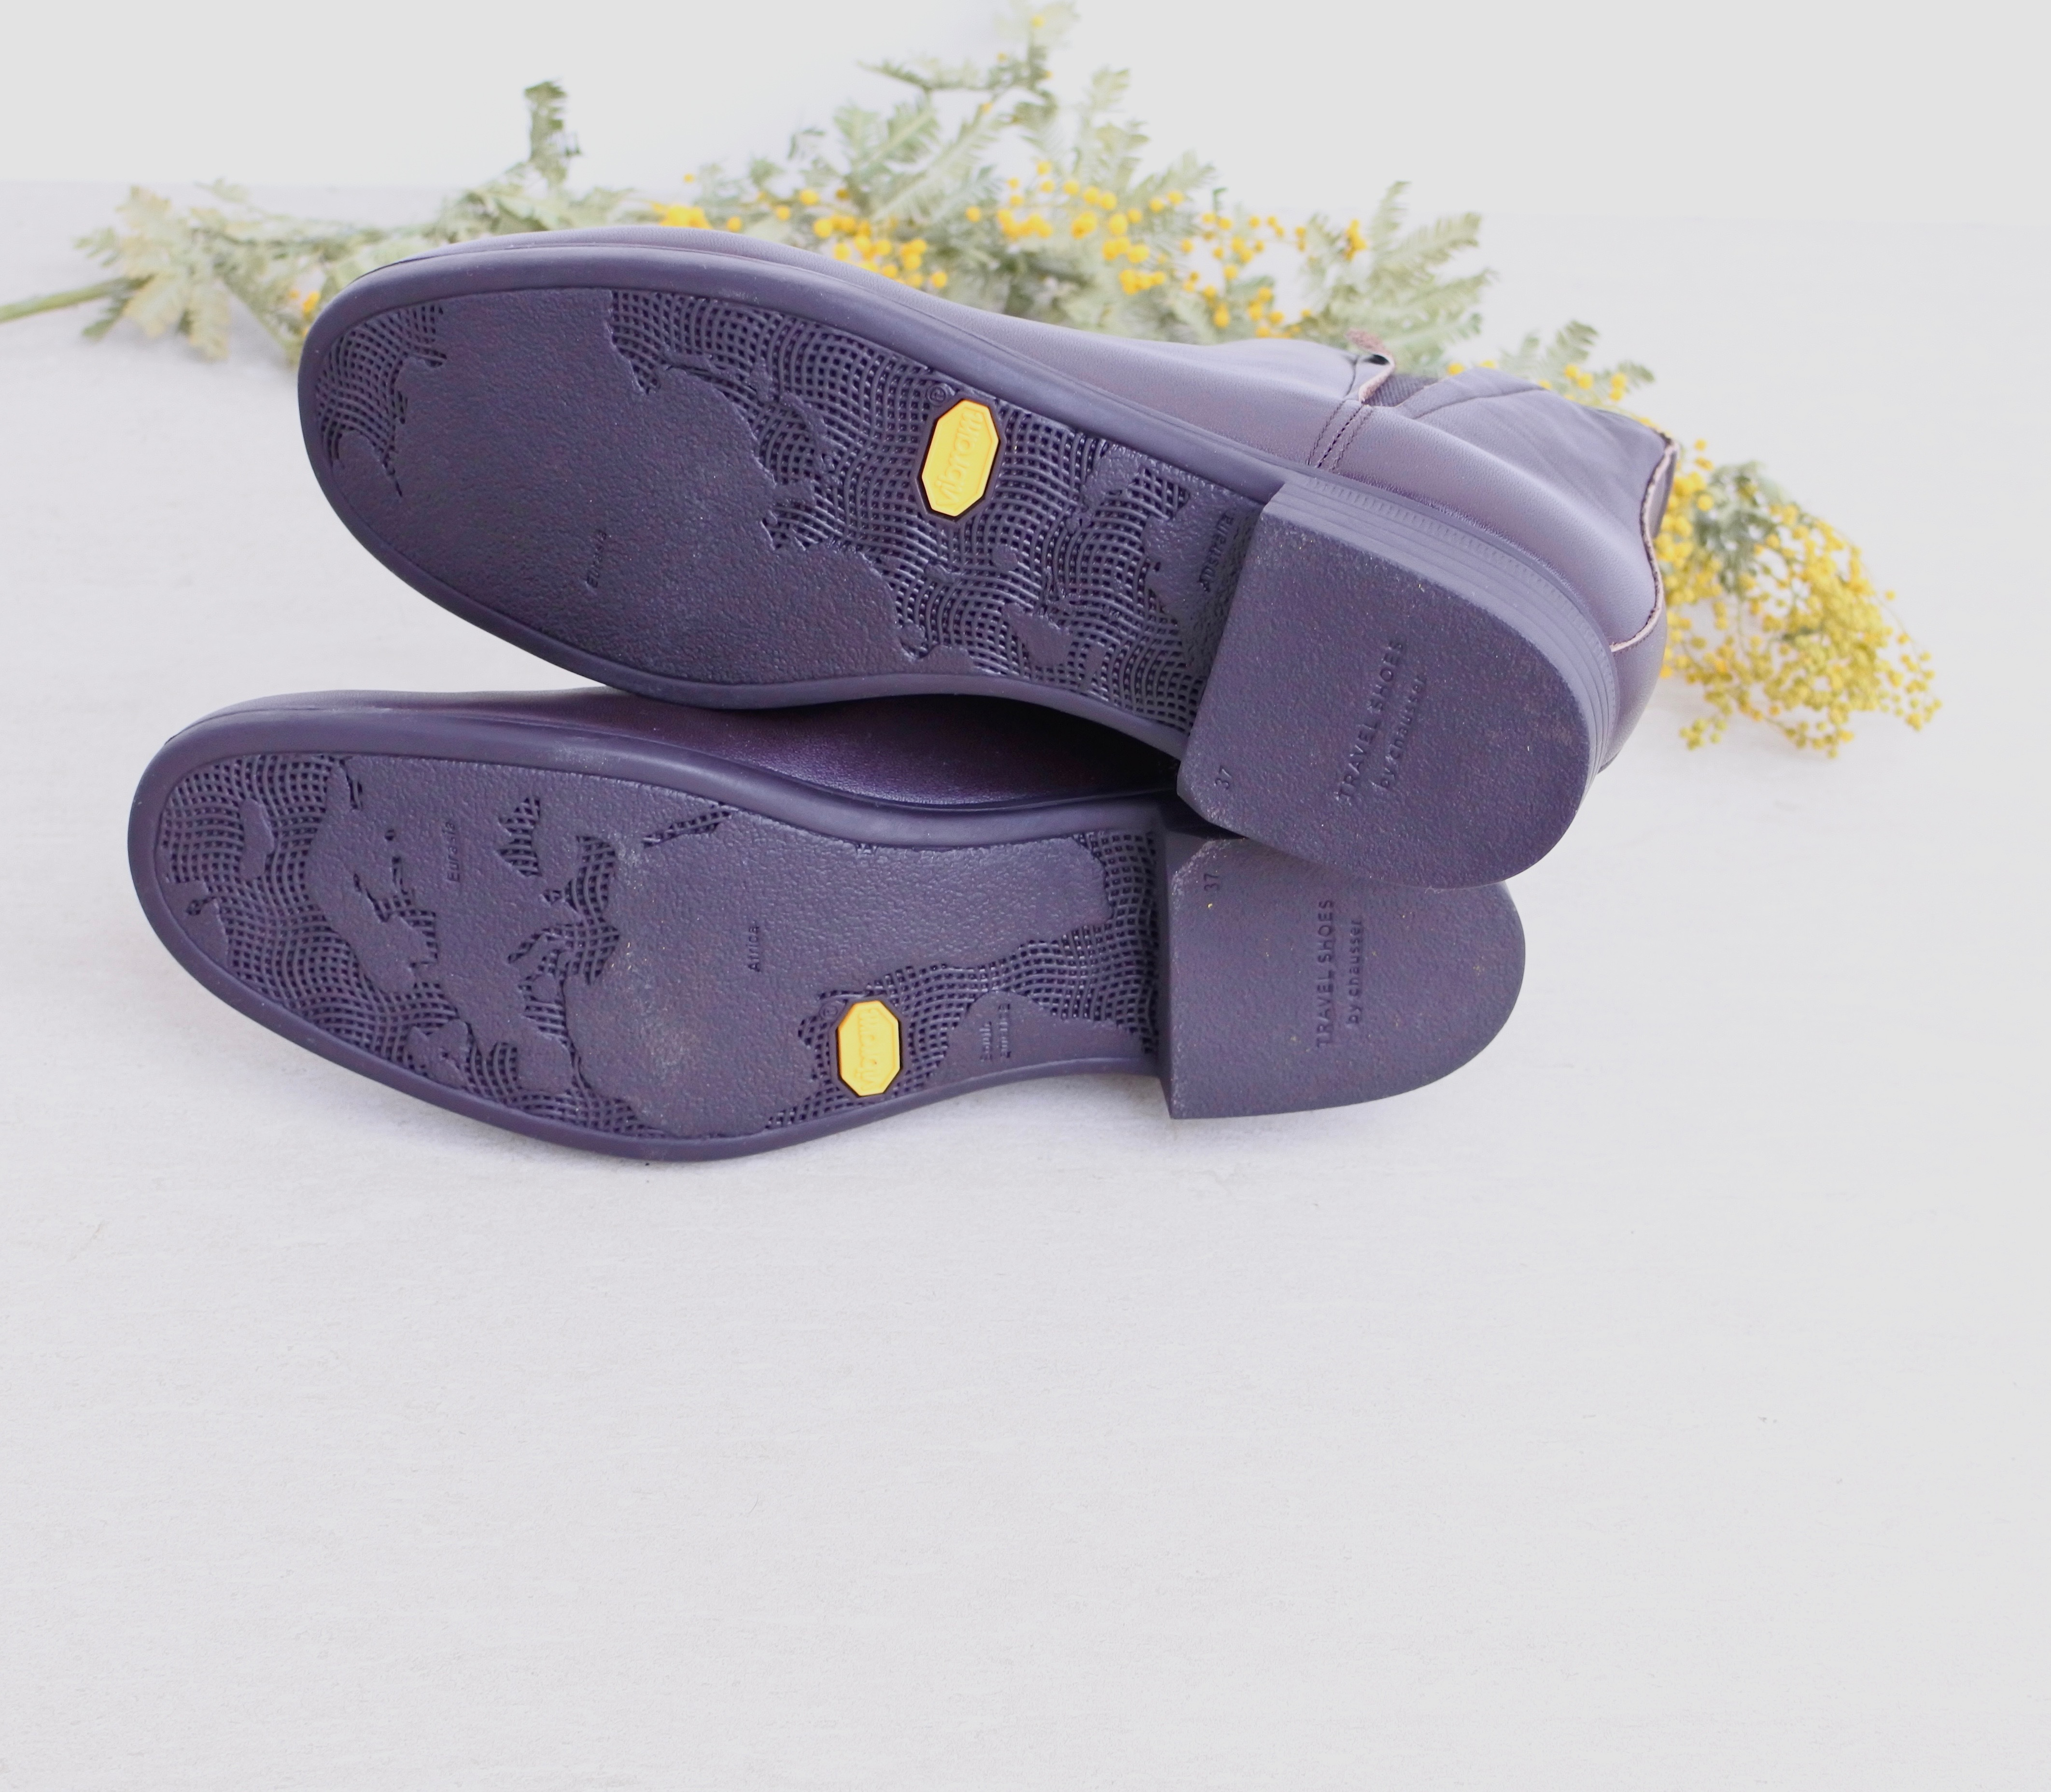 TRAVEL SHOES by chausser / サイドゴアブーツ